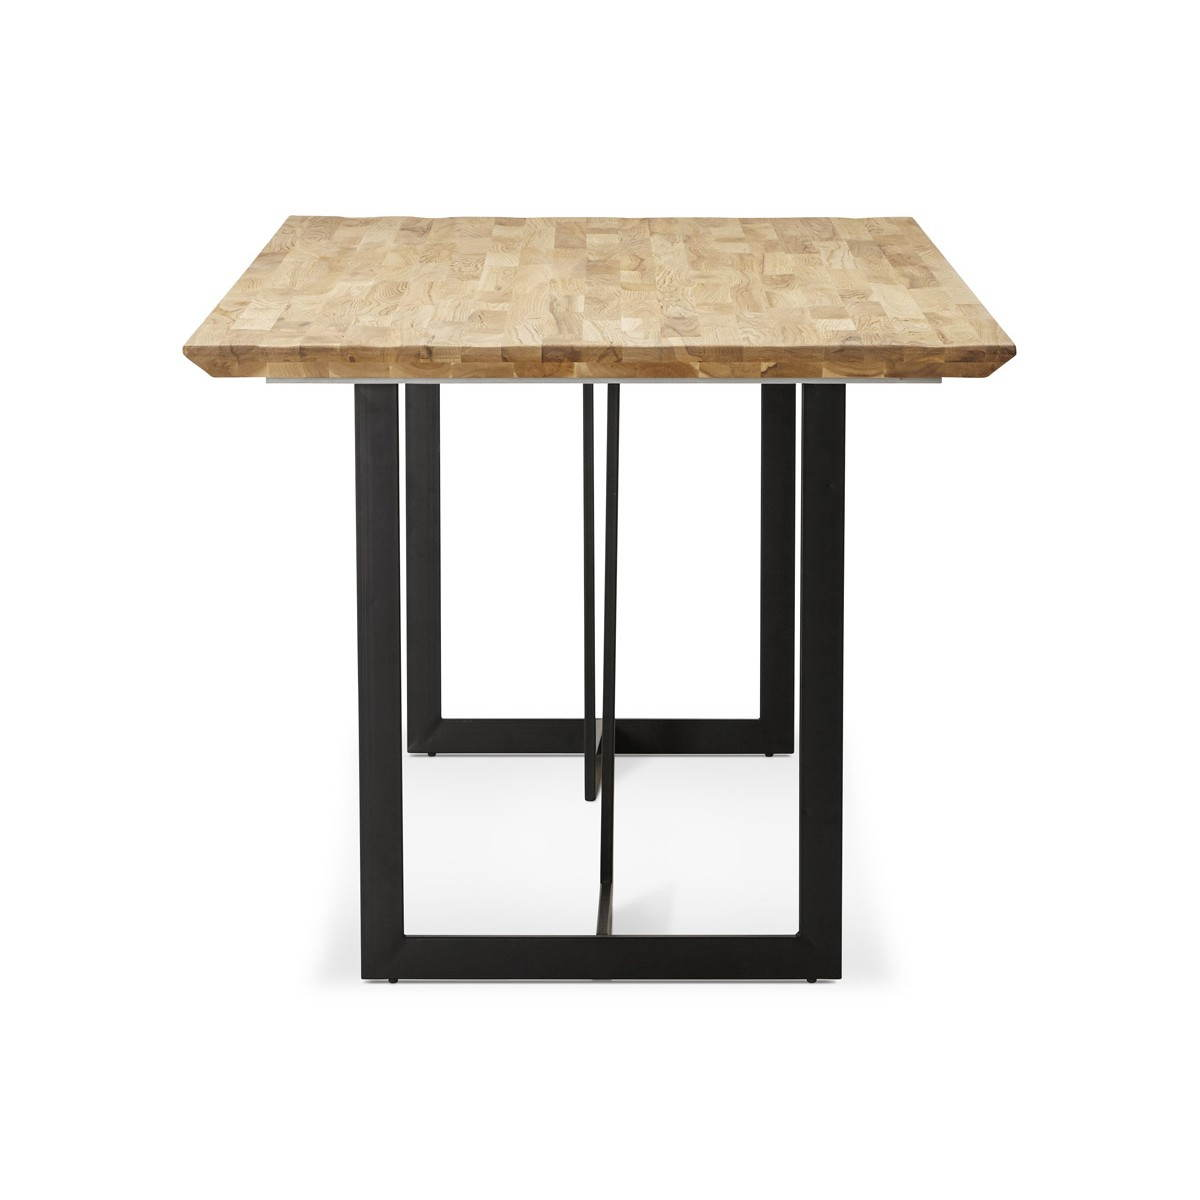 Table moderne rectangulaire nanou en ch ne bois naturel - Table chene moderne ...